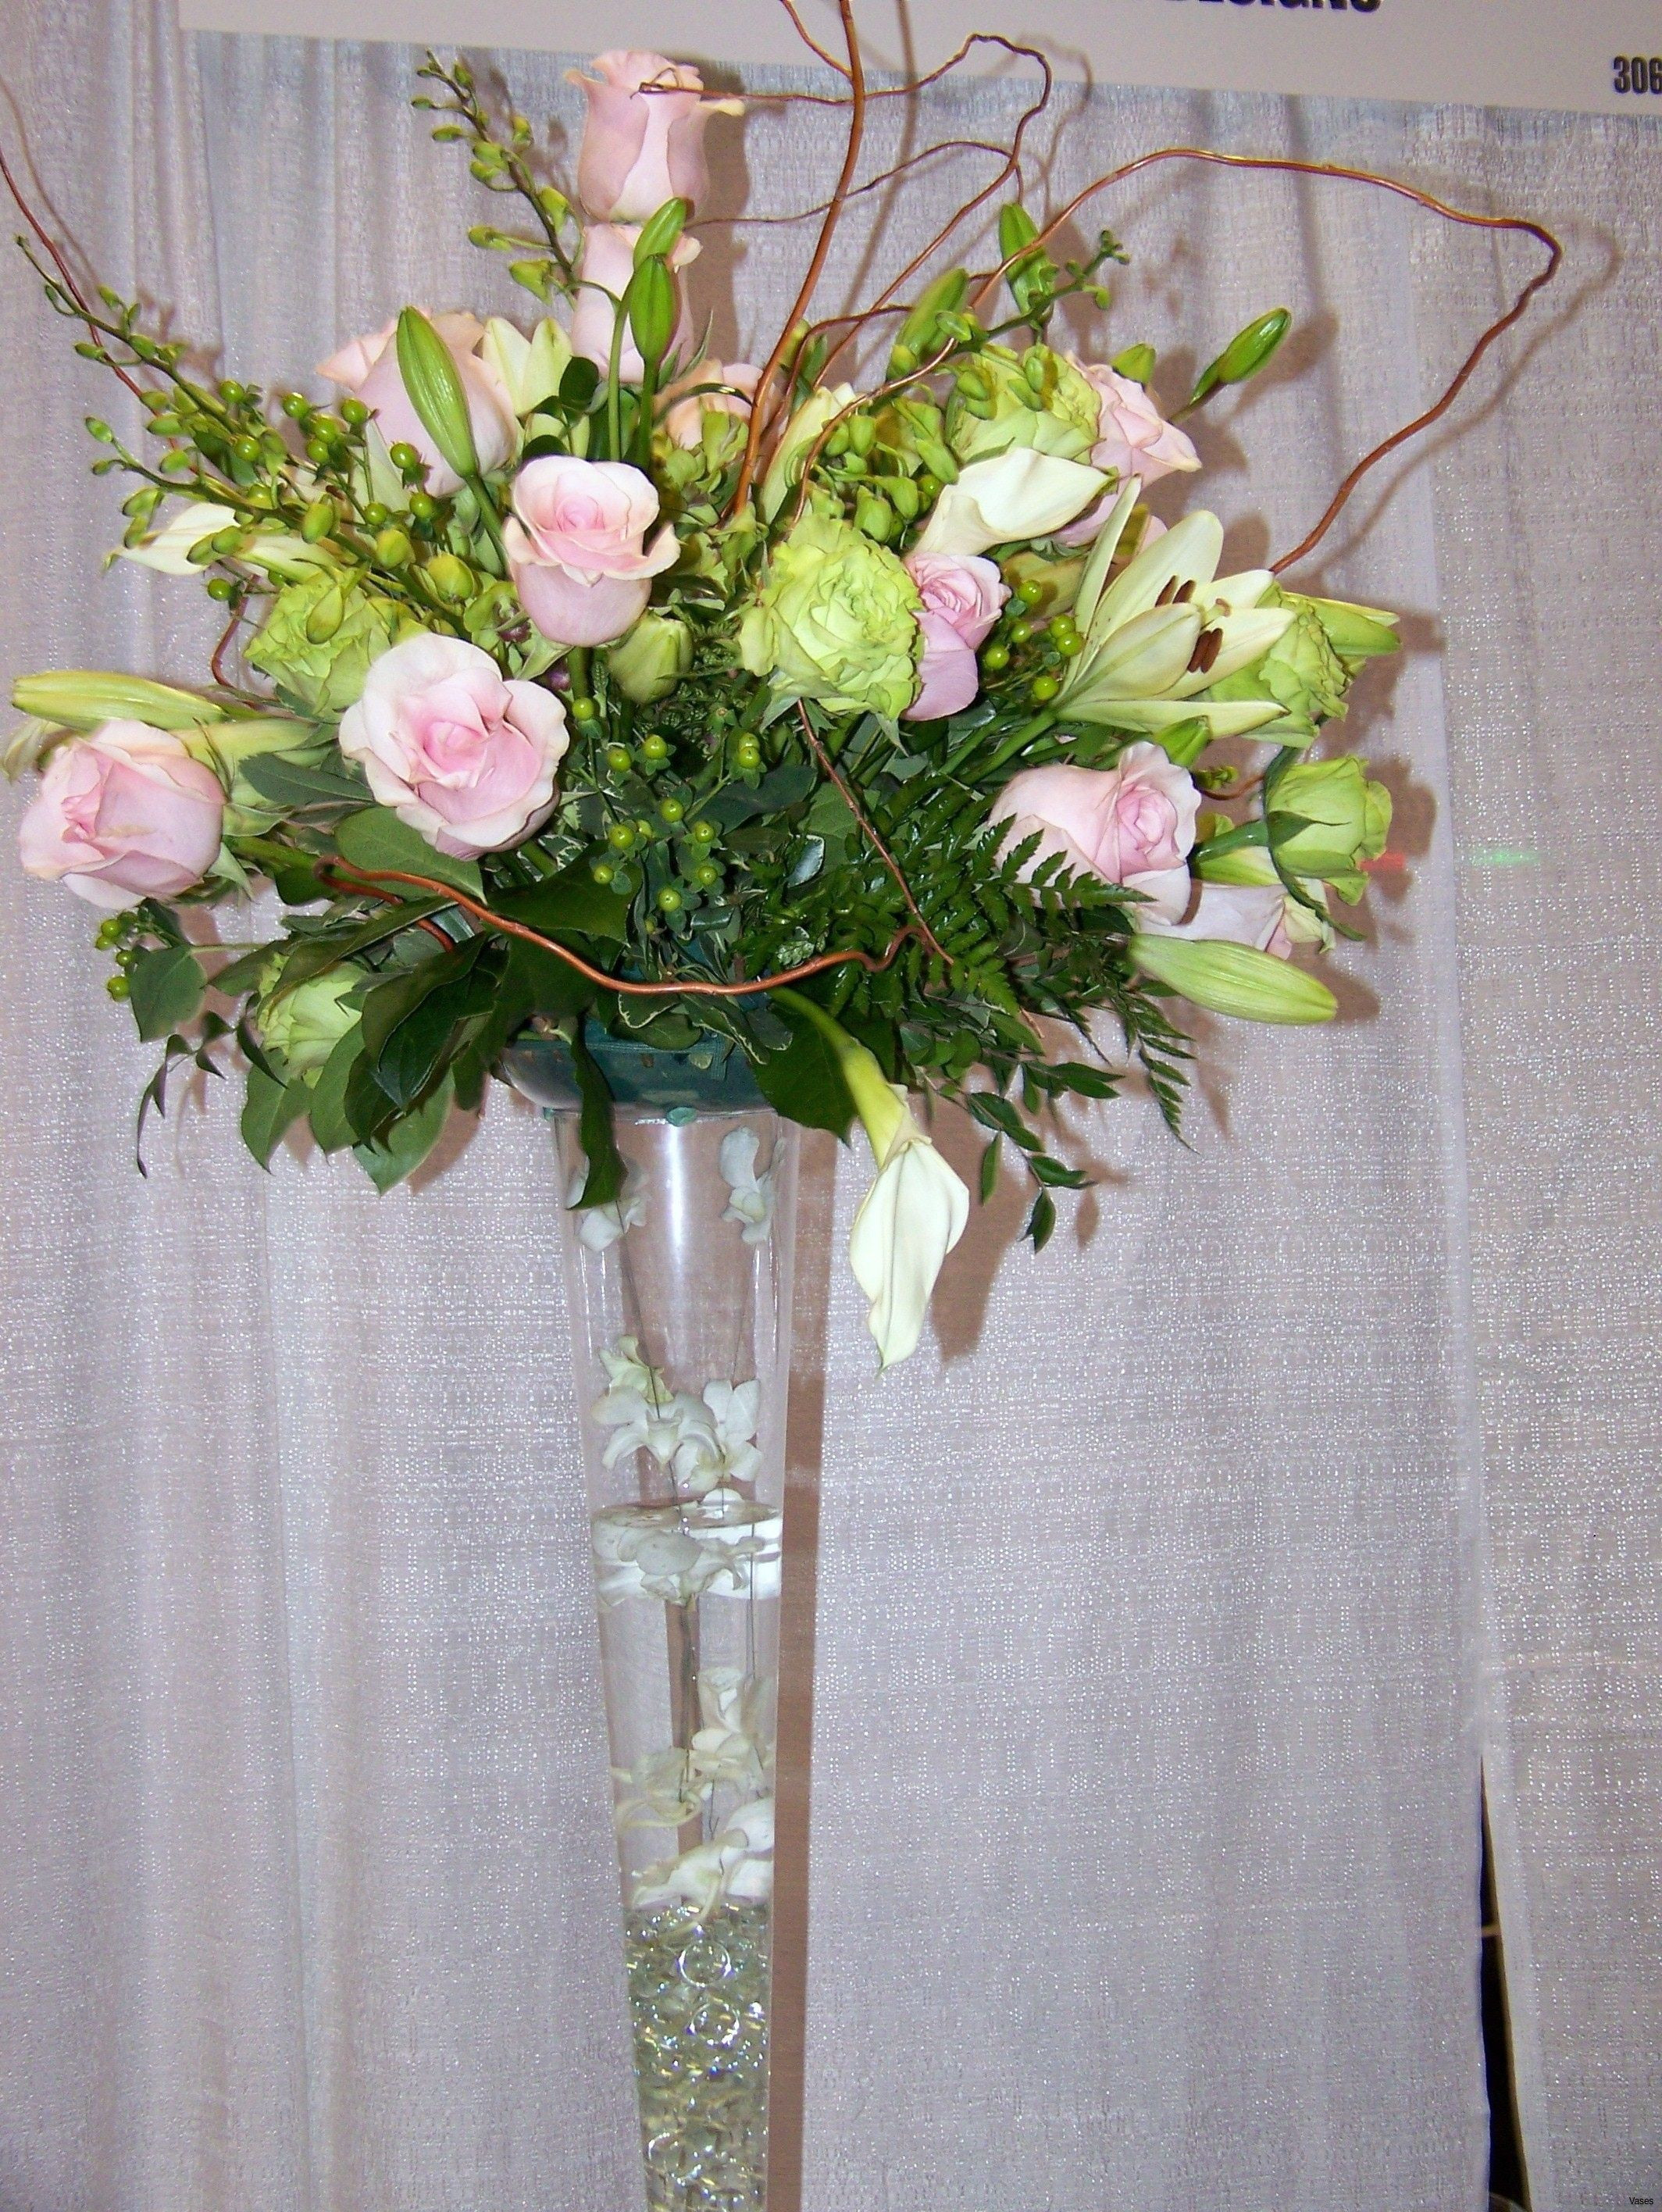 cotton for vases of 25 blue flower vase the weekly world in flowers pink green blue s elegant h vases ideas for floral